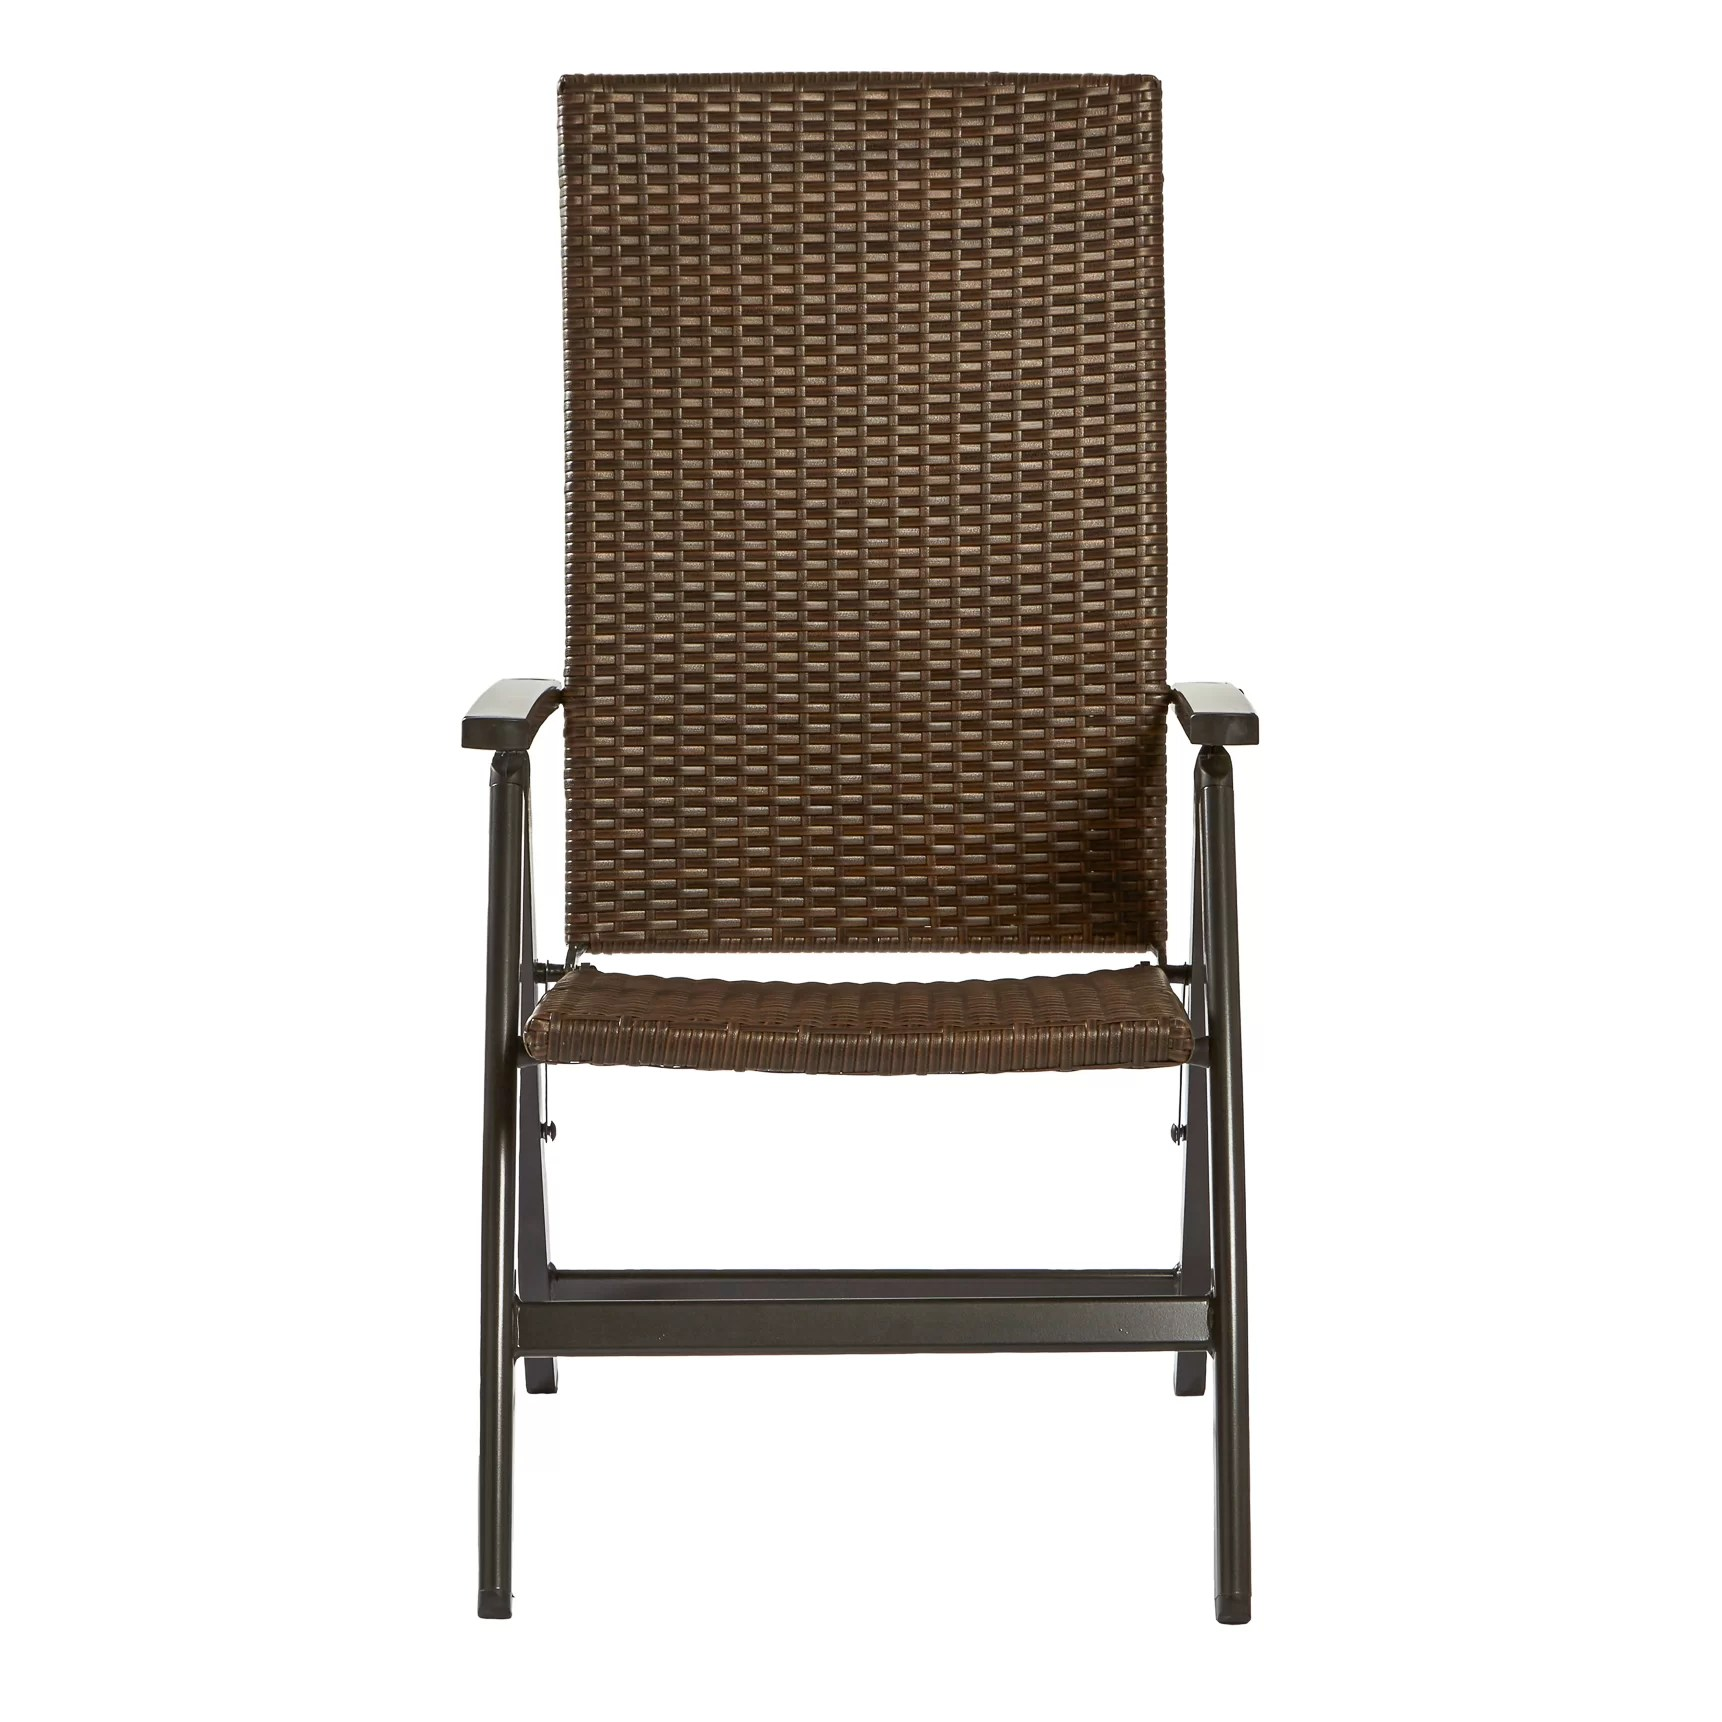 wicker reclining patio chair ergonomic for sale greendale home fashions outdoor